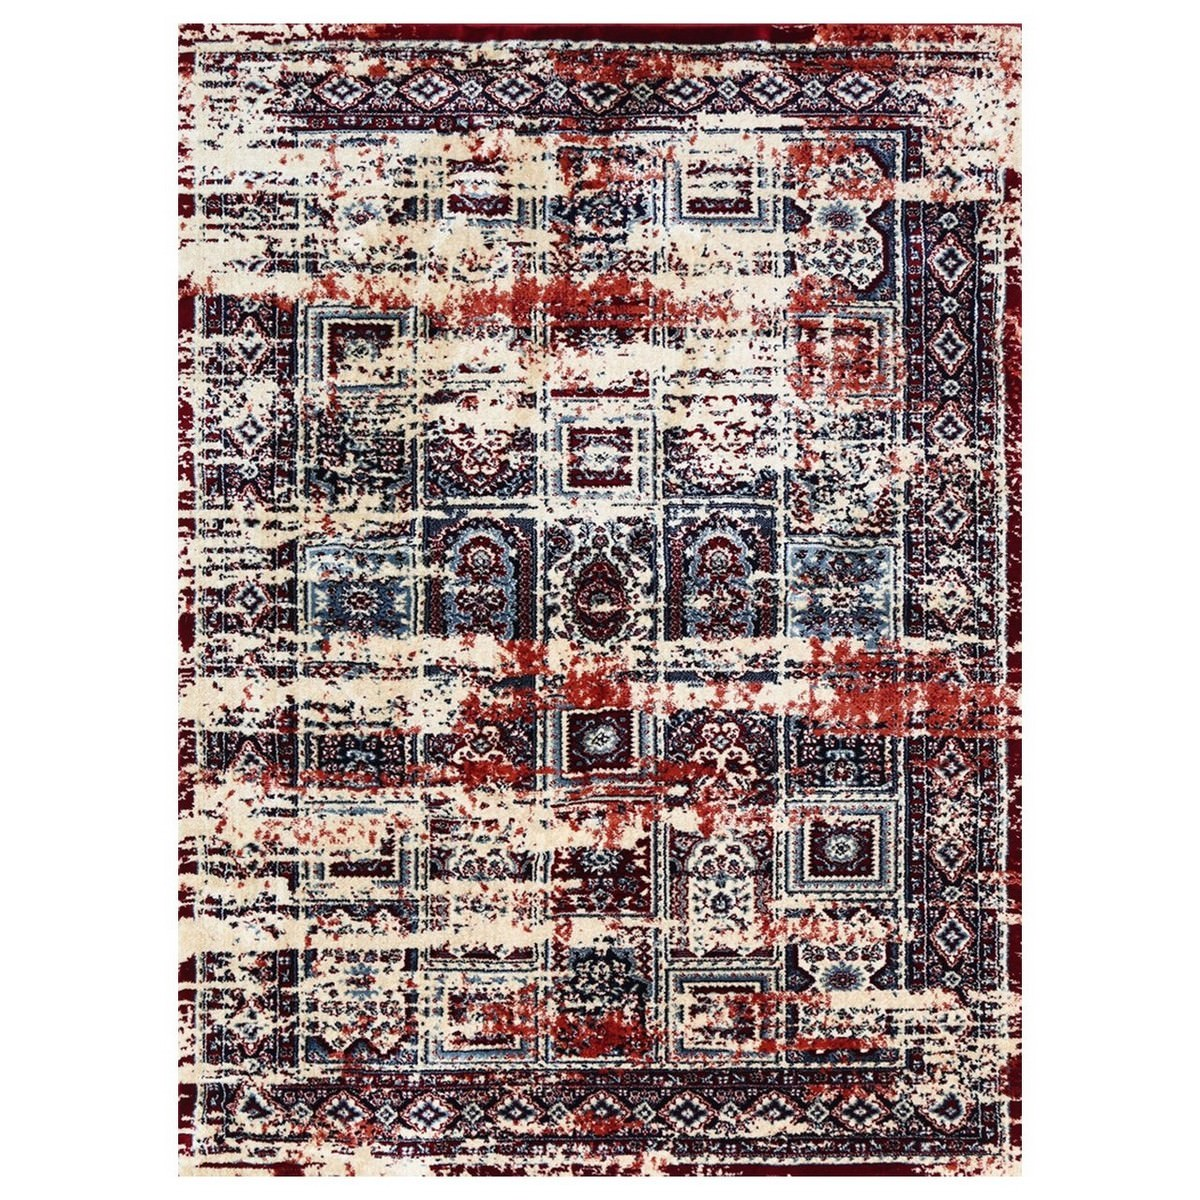 Artifact Gazsi Distressed Oriental Rug, 240x330cm